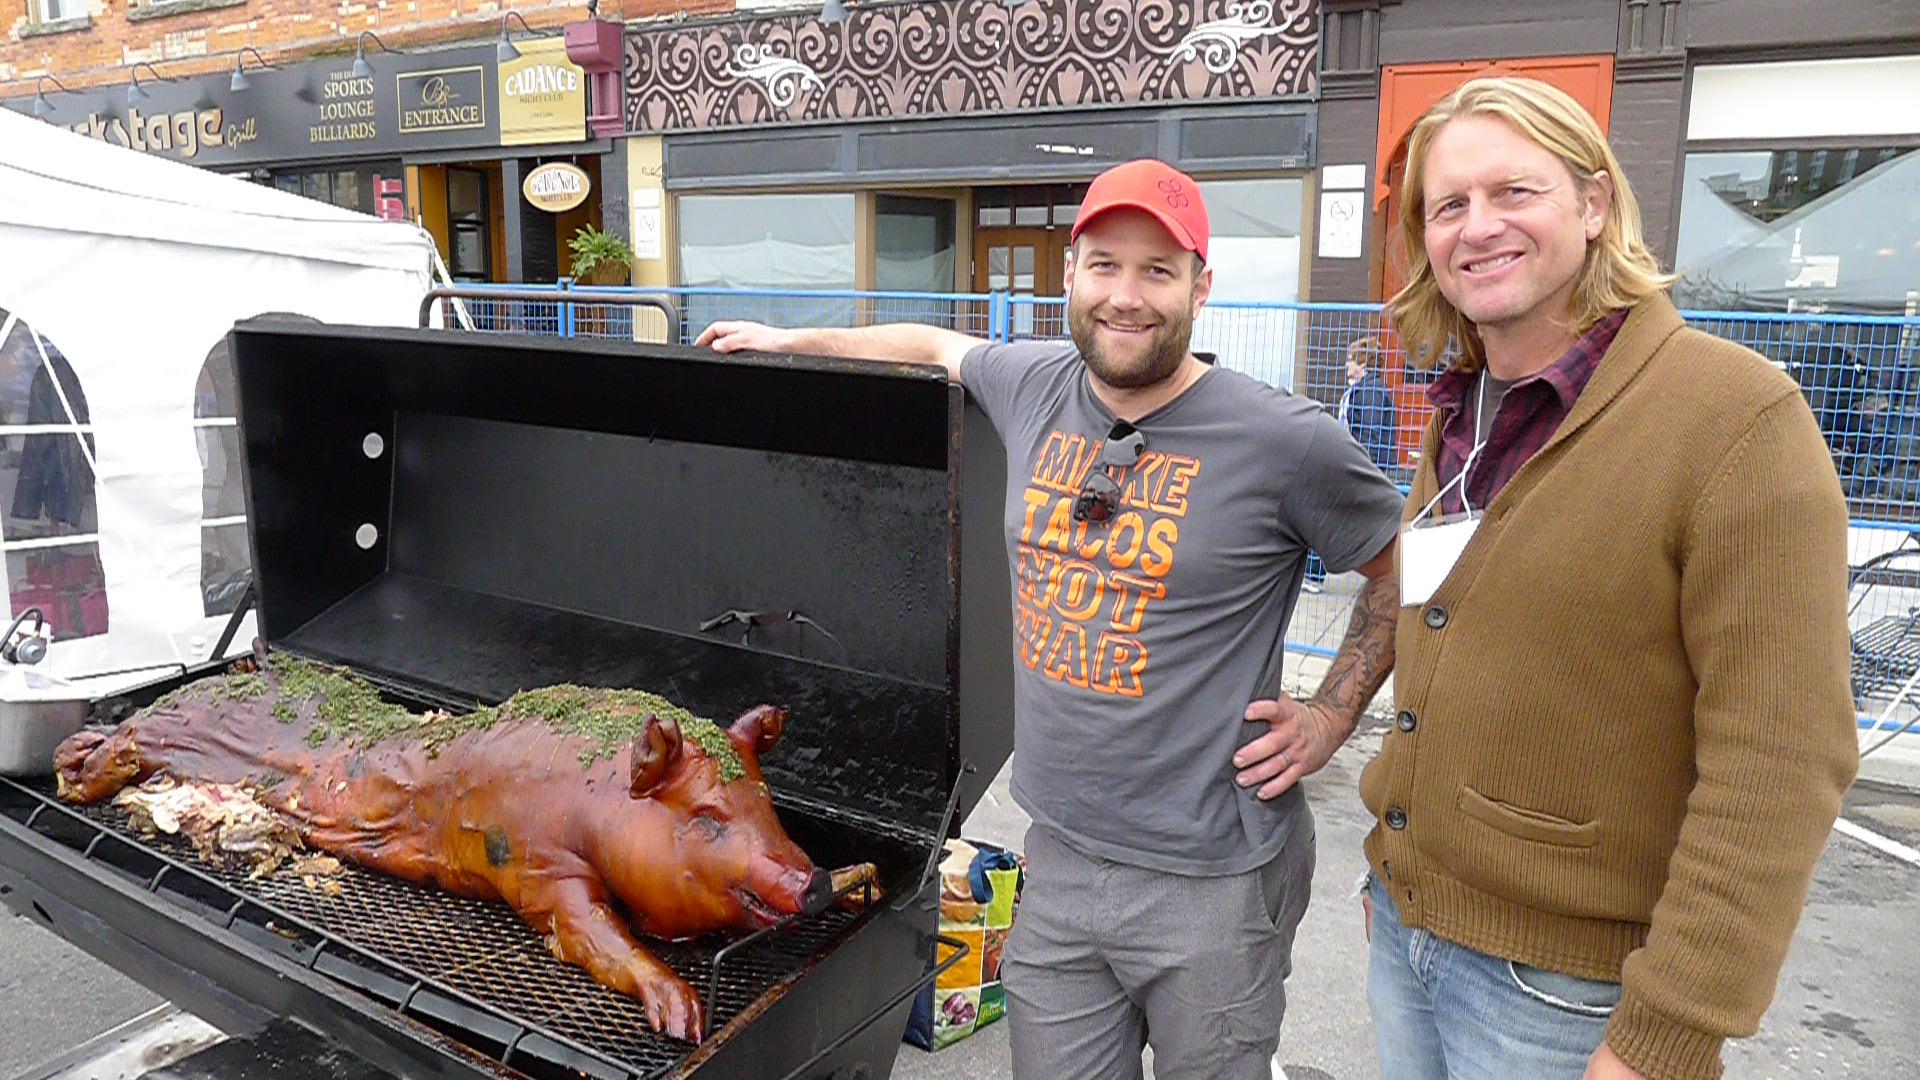 Chef Nick Benninger and Farmer Mark Lass proudly show off their very special pig roast.